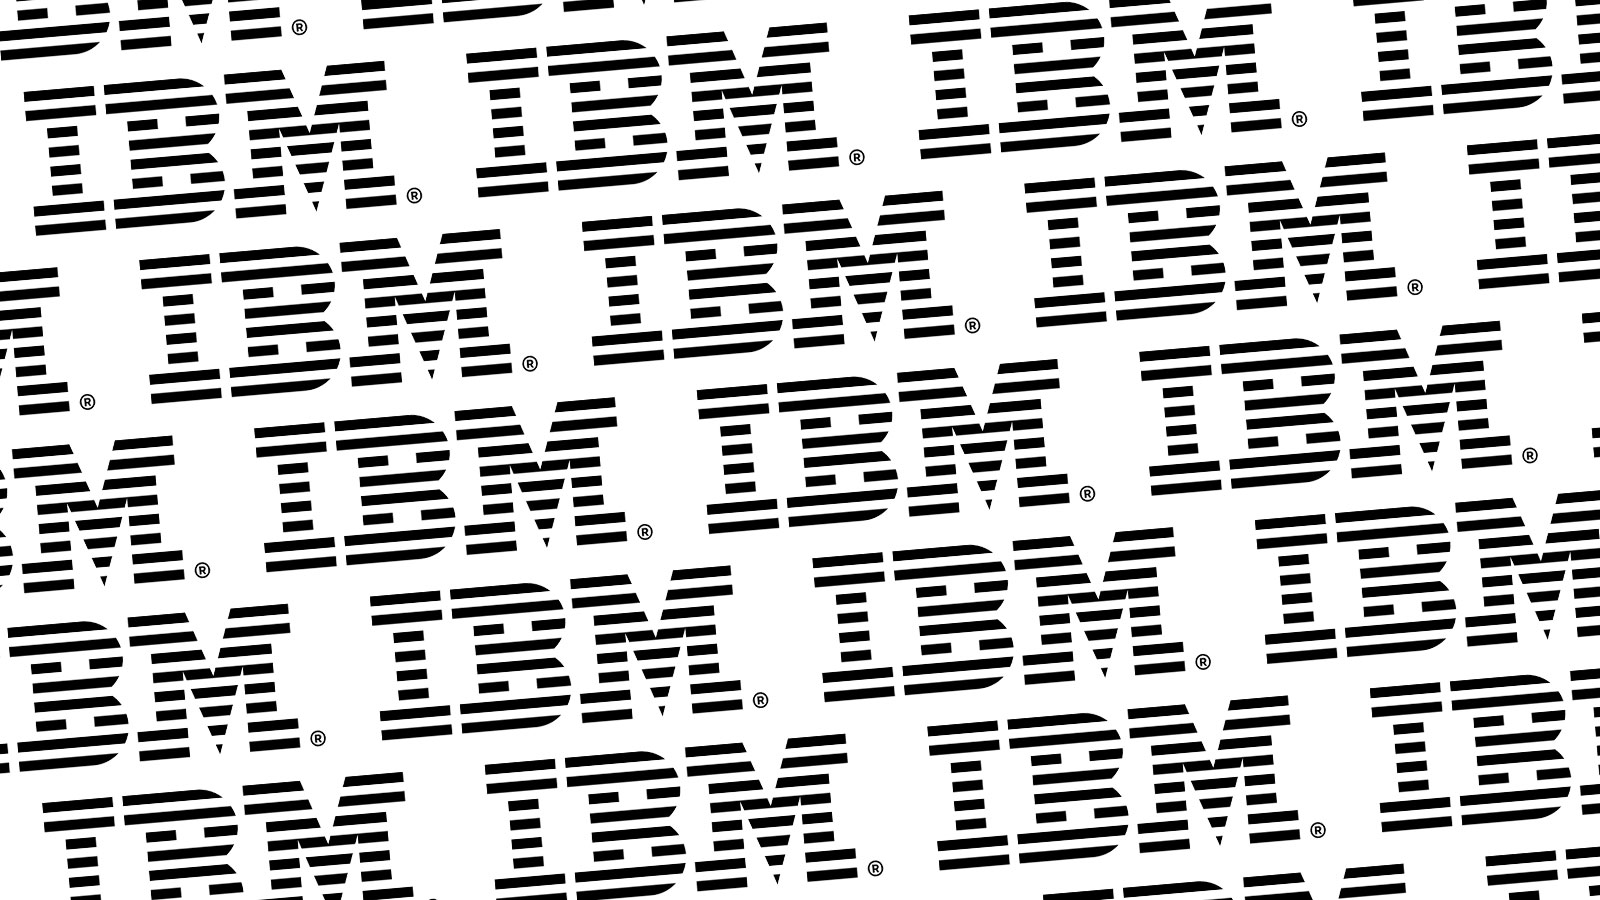 The ultimate guide to tech giant IBM (plus advice on how to get hired there)